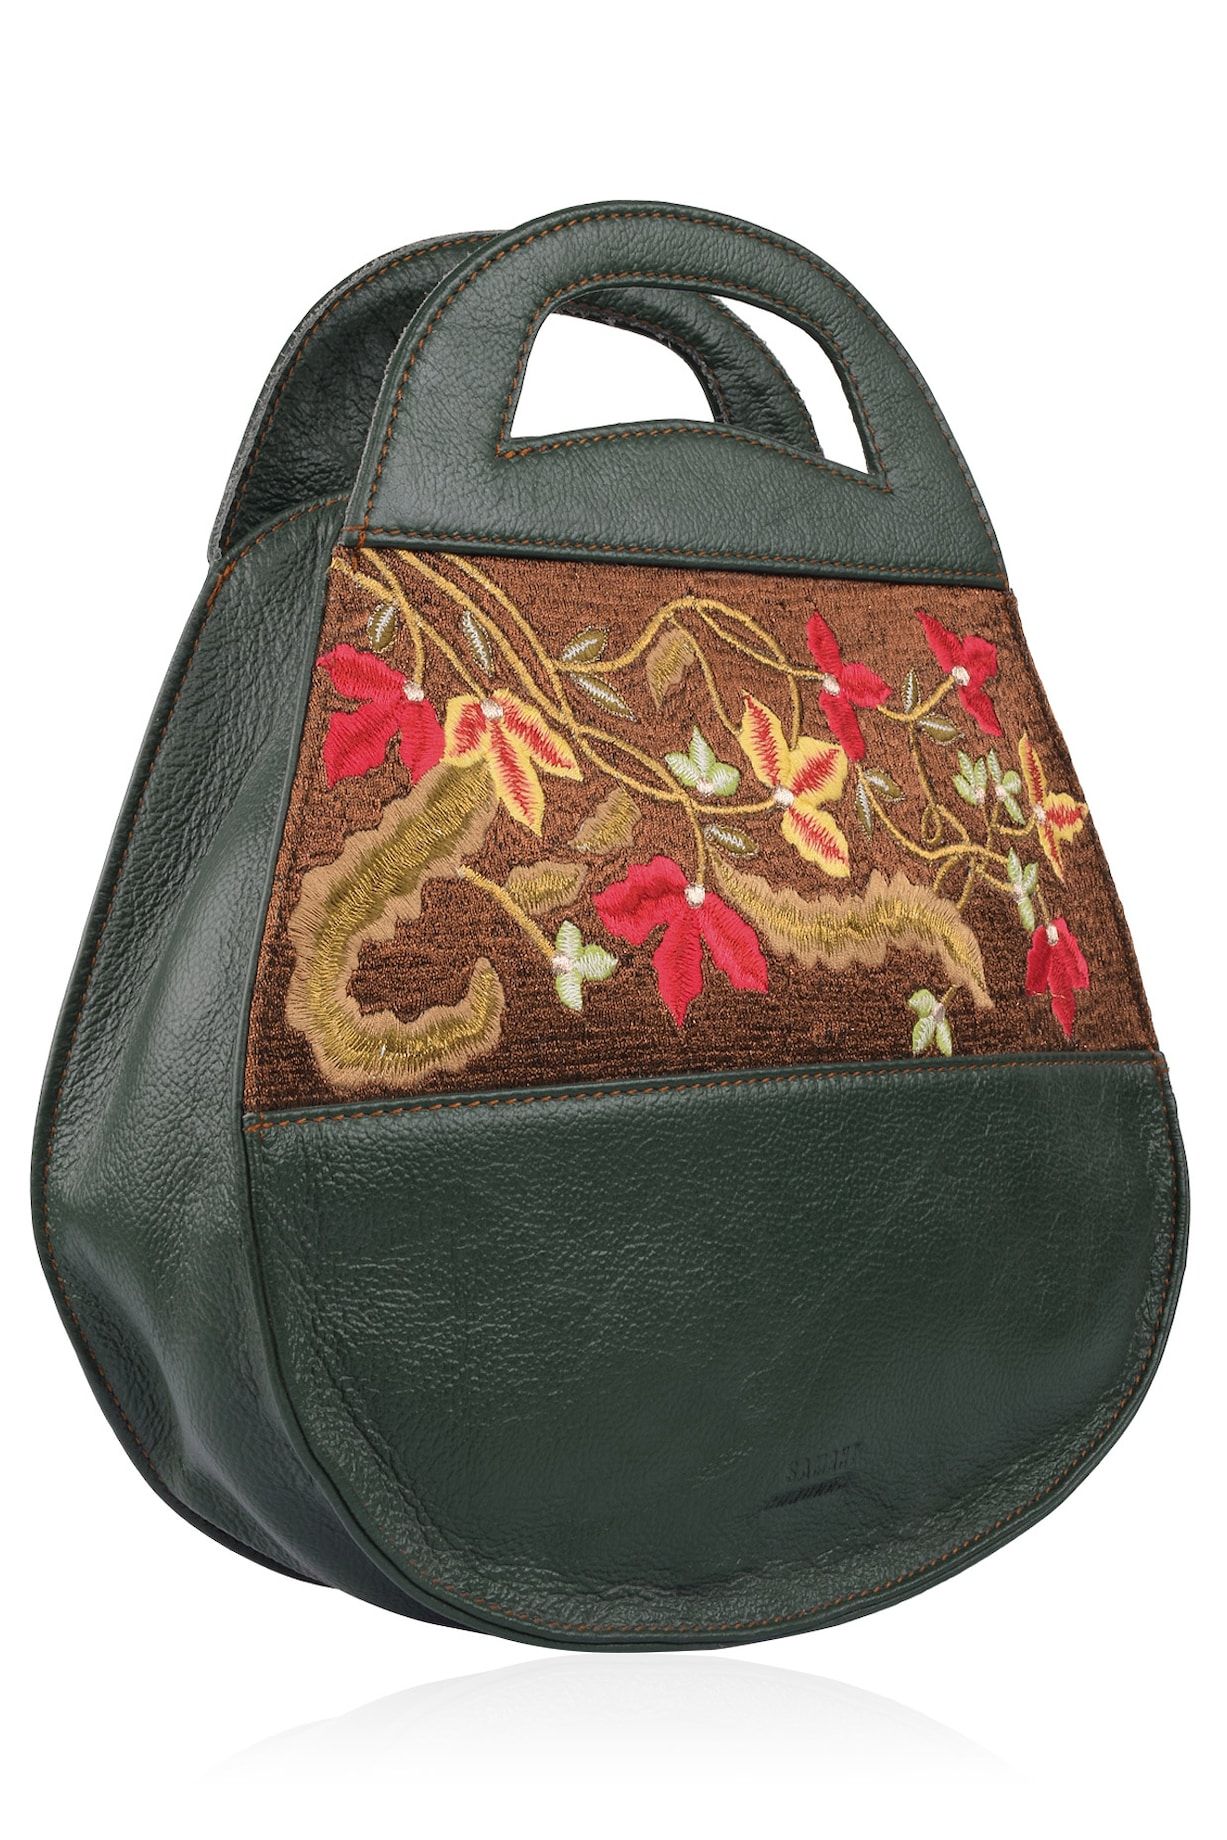 Samant Chauhan Accessories Bags